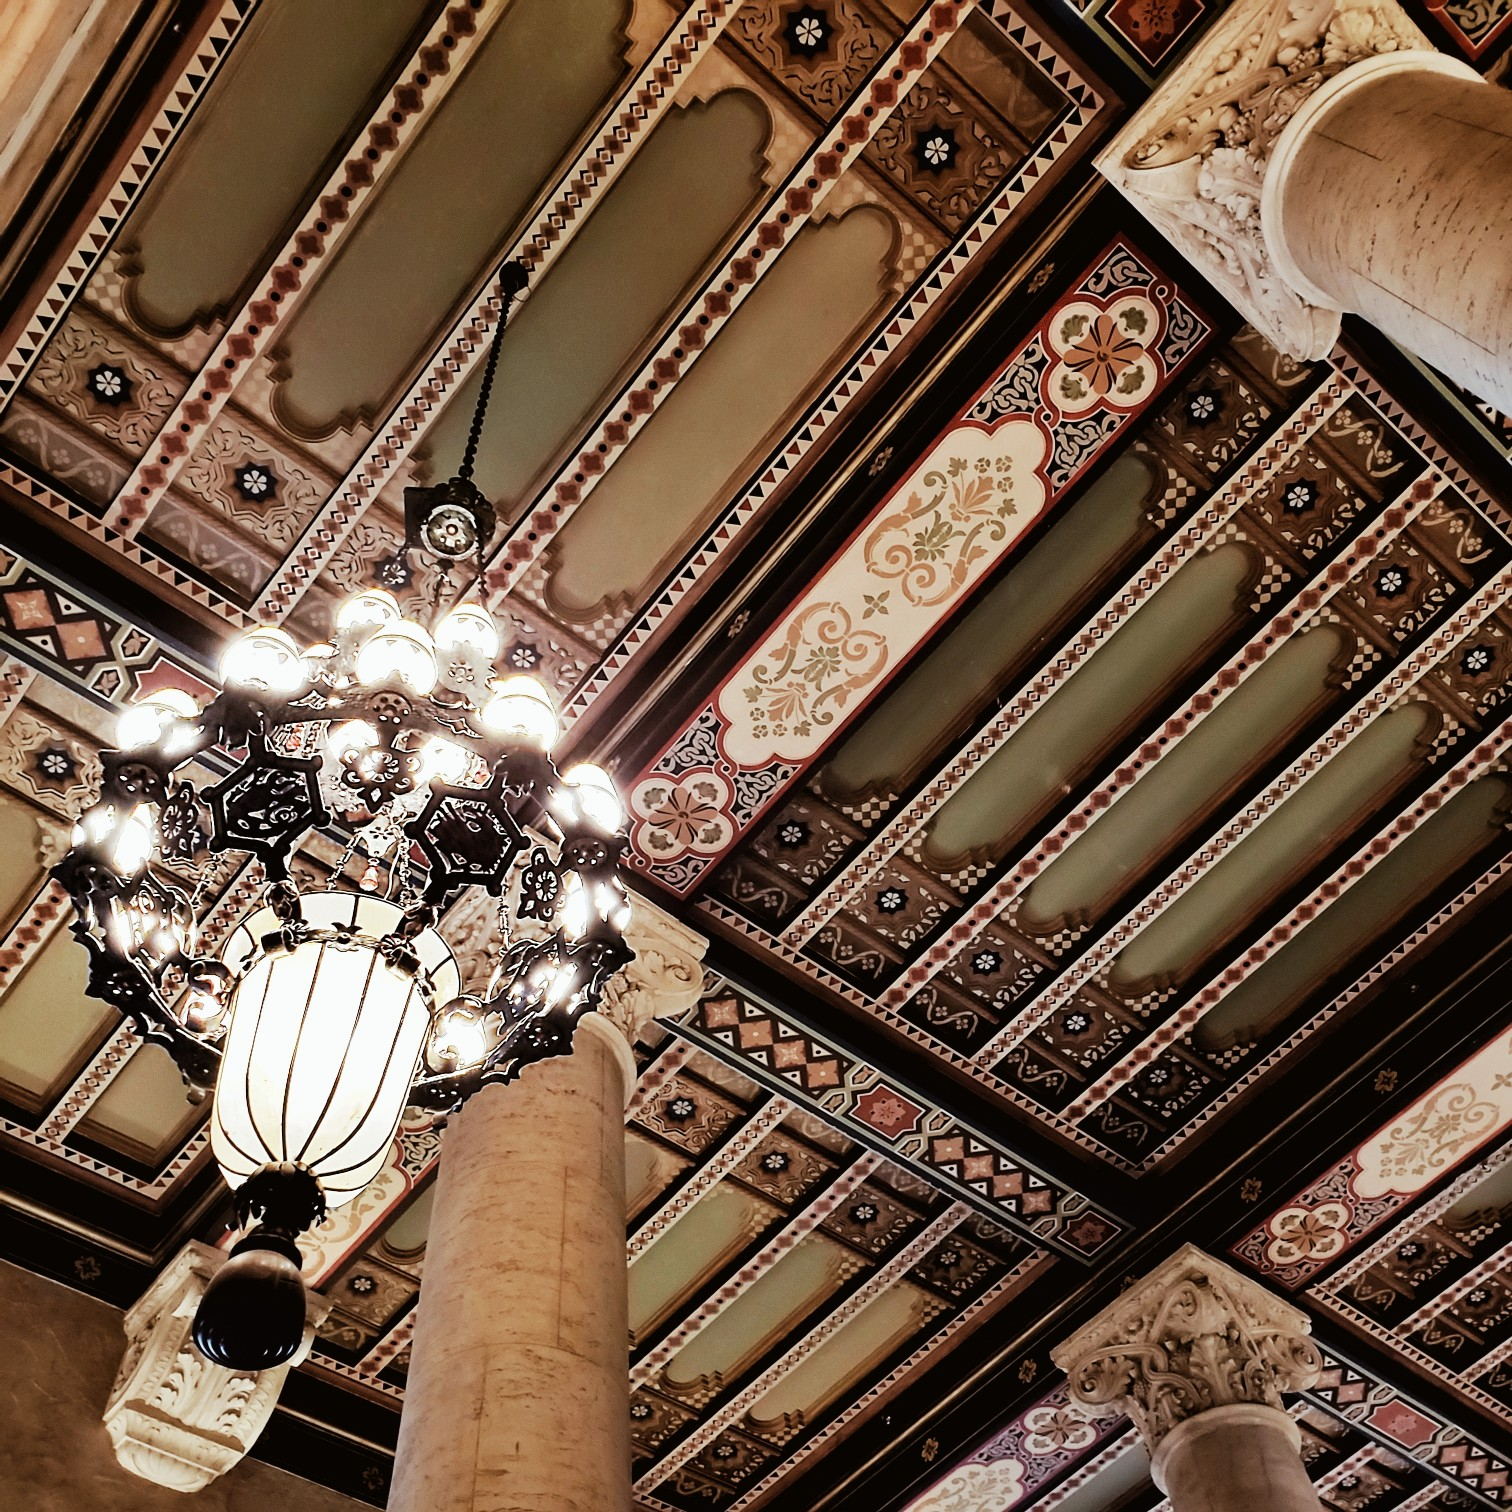 Biltmore Hotel Miami Coral Gables Ceiling Interior Luxury Design